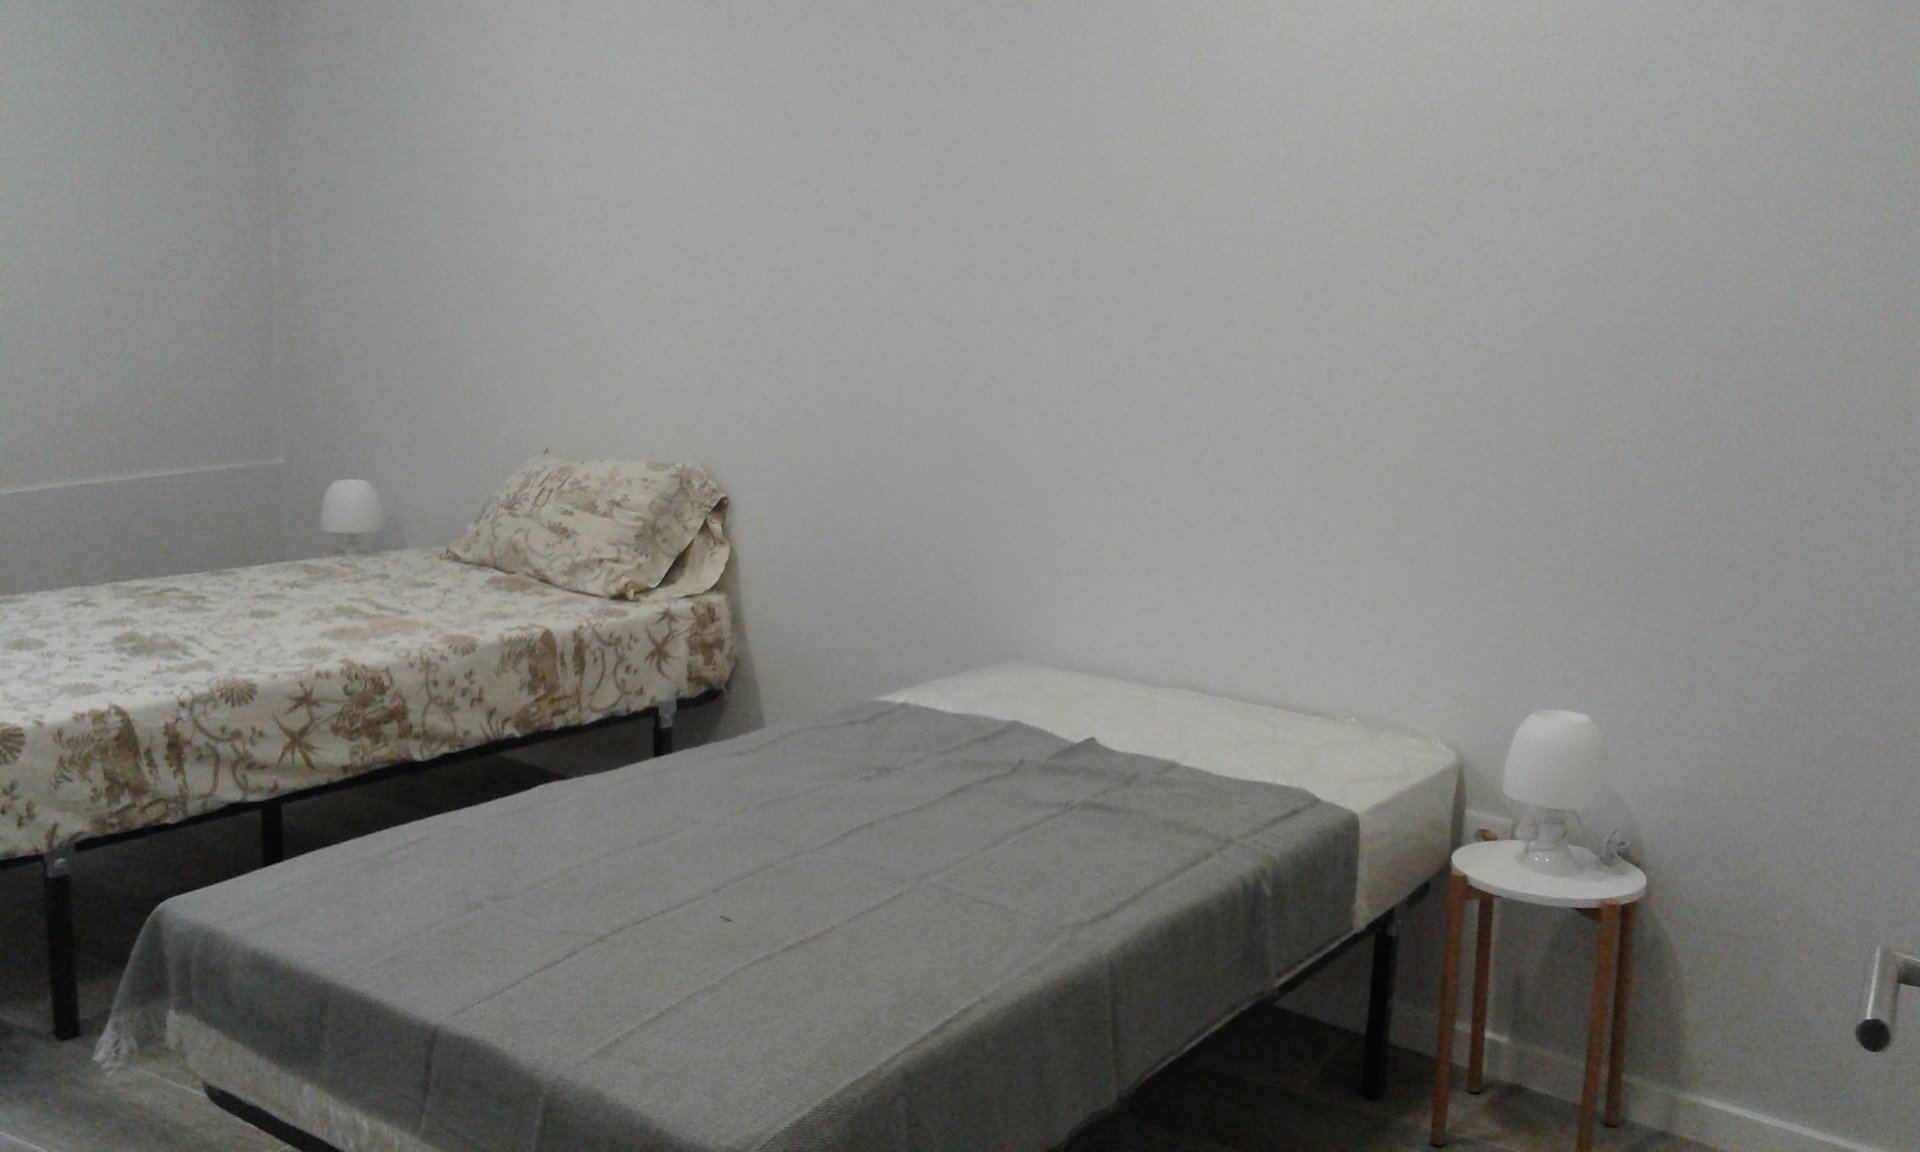 Room for renting located 5 minutes from the universit in the cen